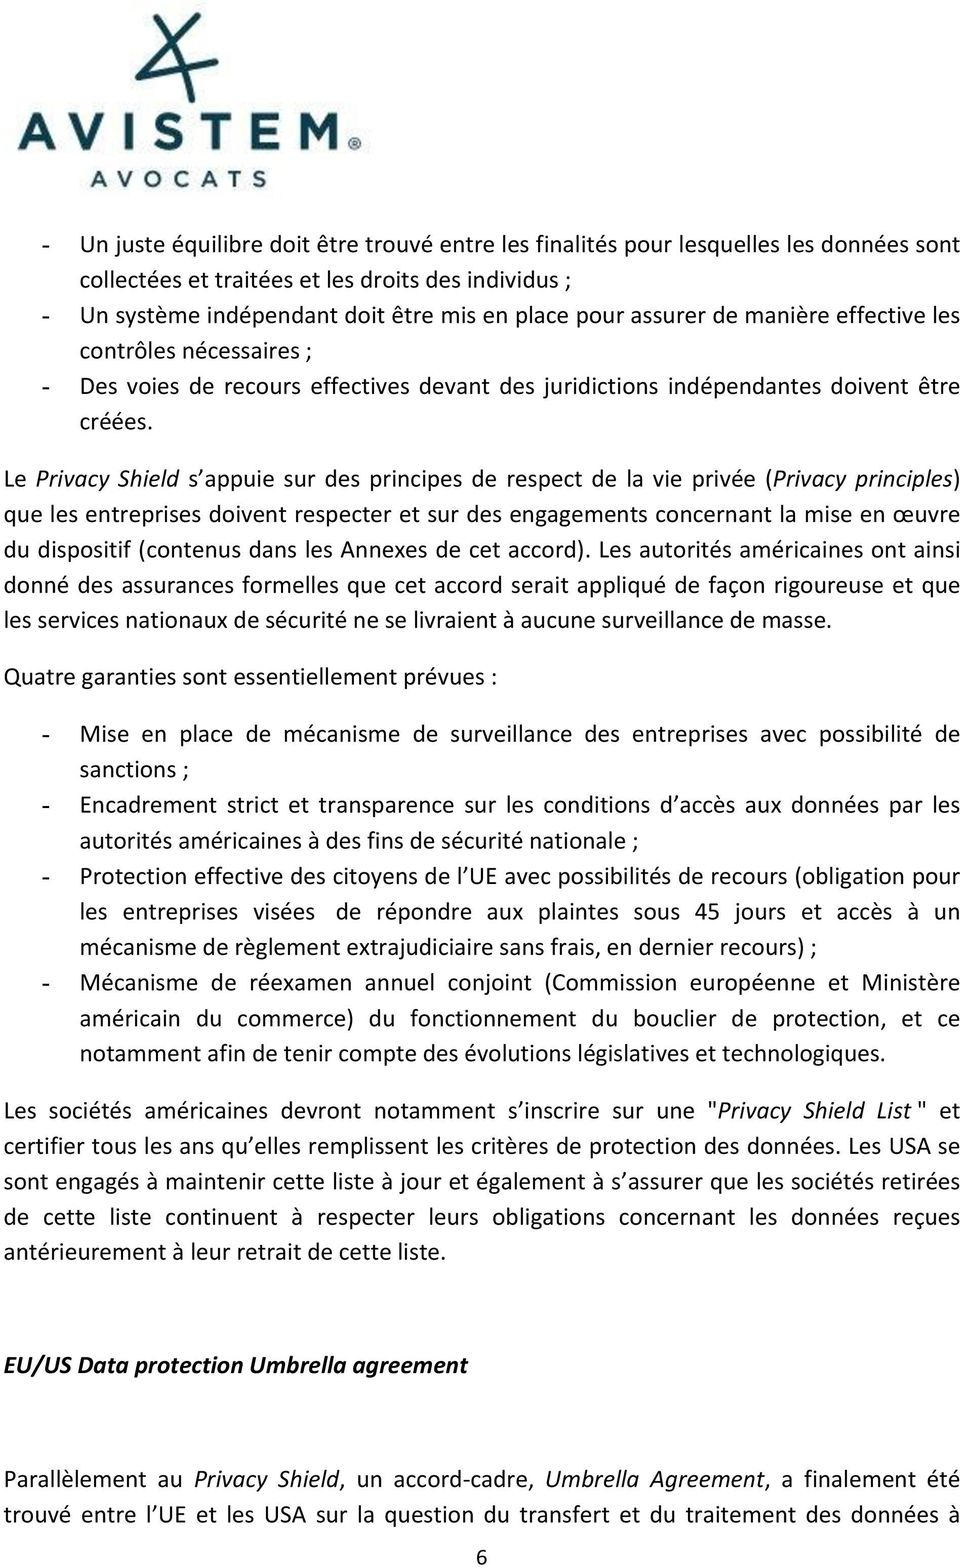 Le Privacy Shield s appuie sur des principes de respect de la vie privée (Privacy principles) que les entreprises doivent respecter et sur des engagements concernant la mise en œuvre du dispositif